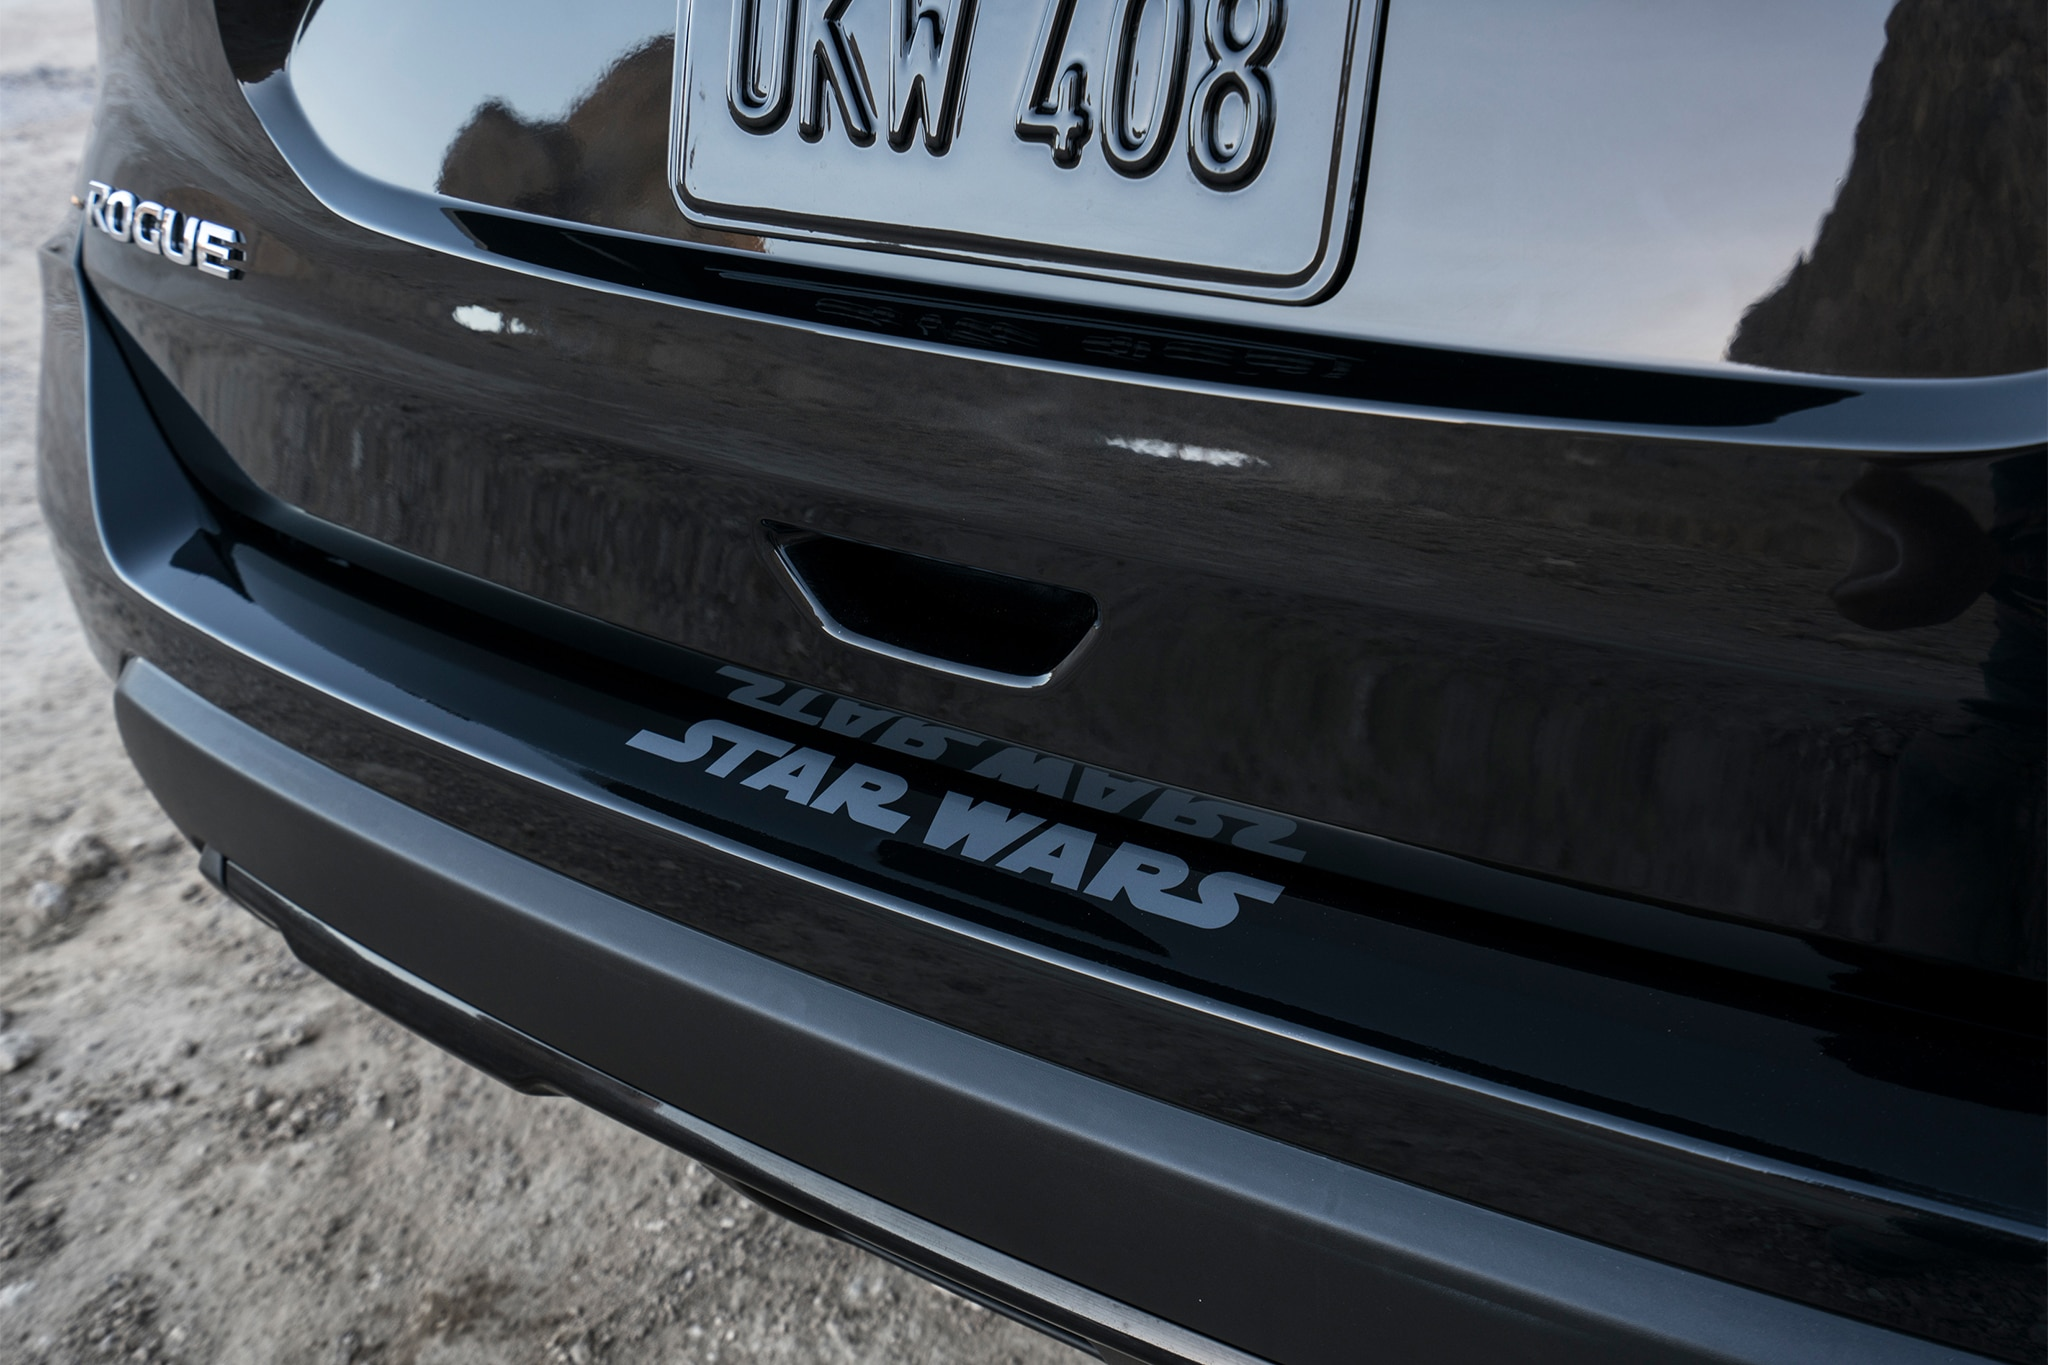 star wars semi specialised edition